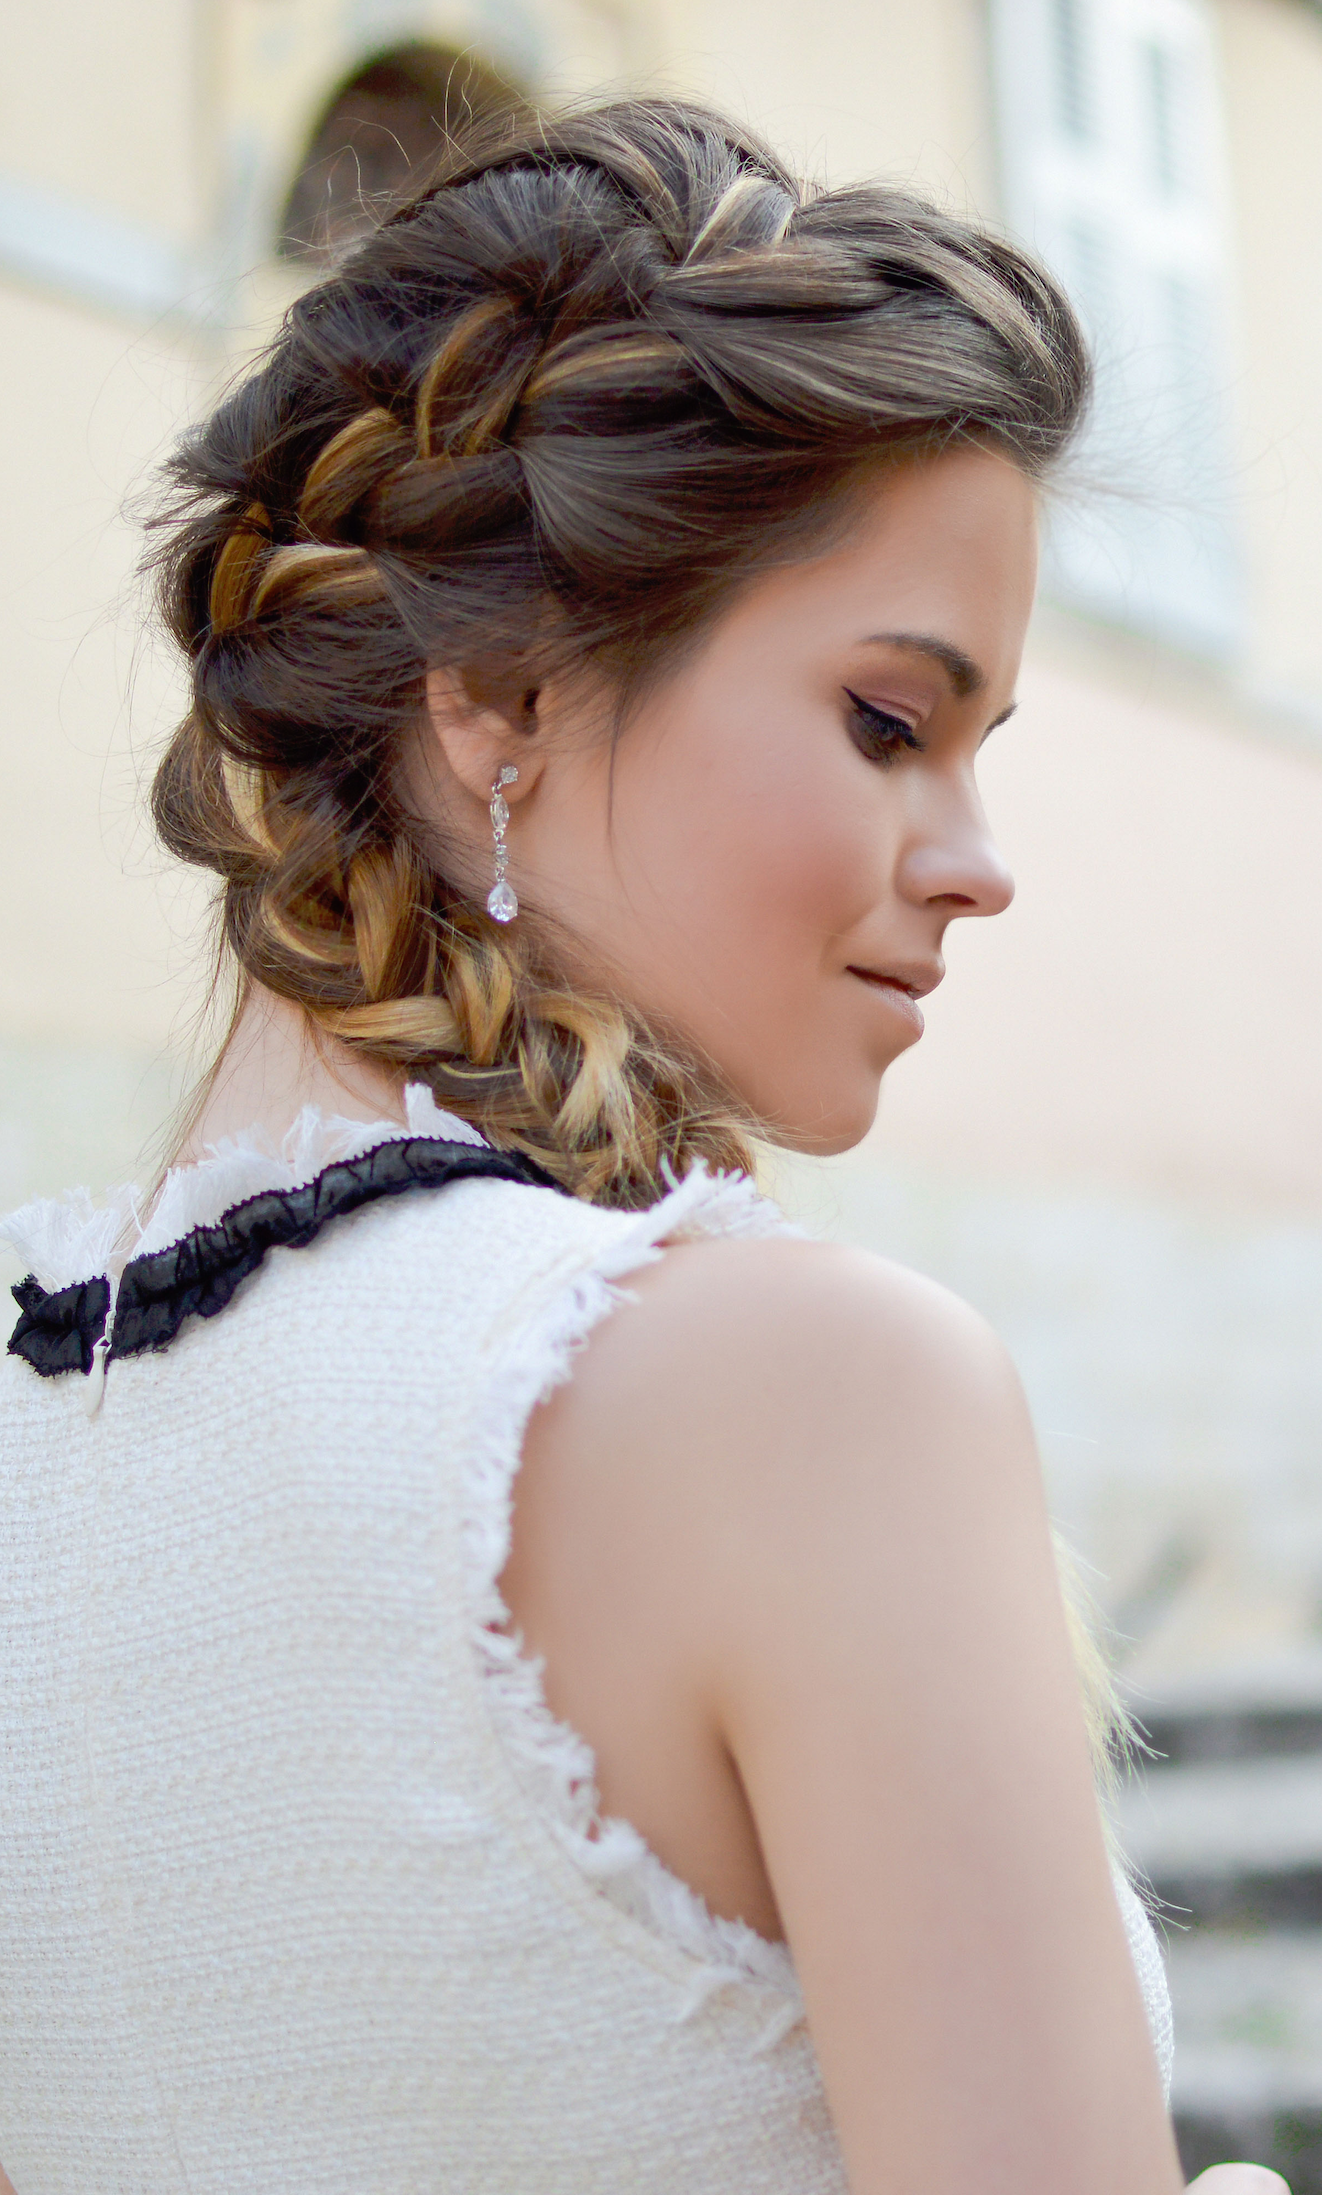 Braids are us biggest hair trend from the milkmaid to backgrounds diy wedding for computer hd pics